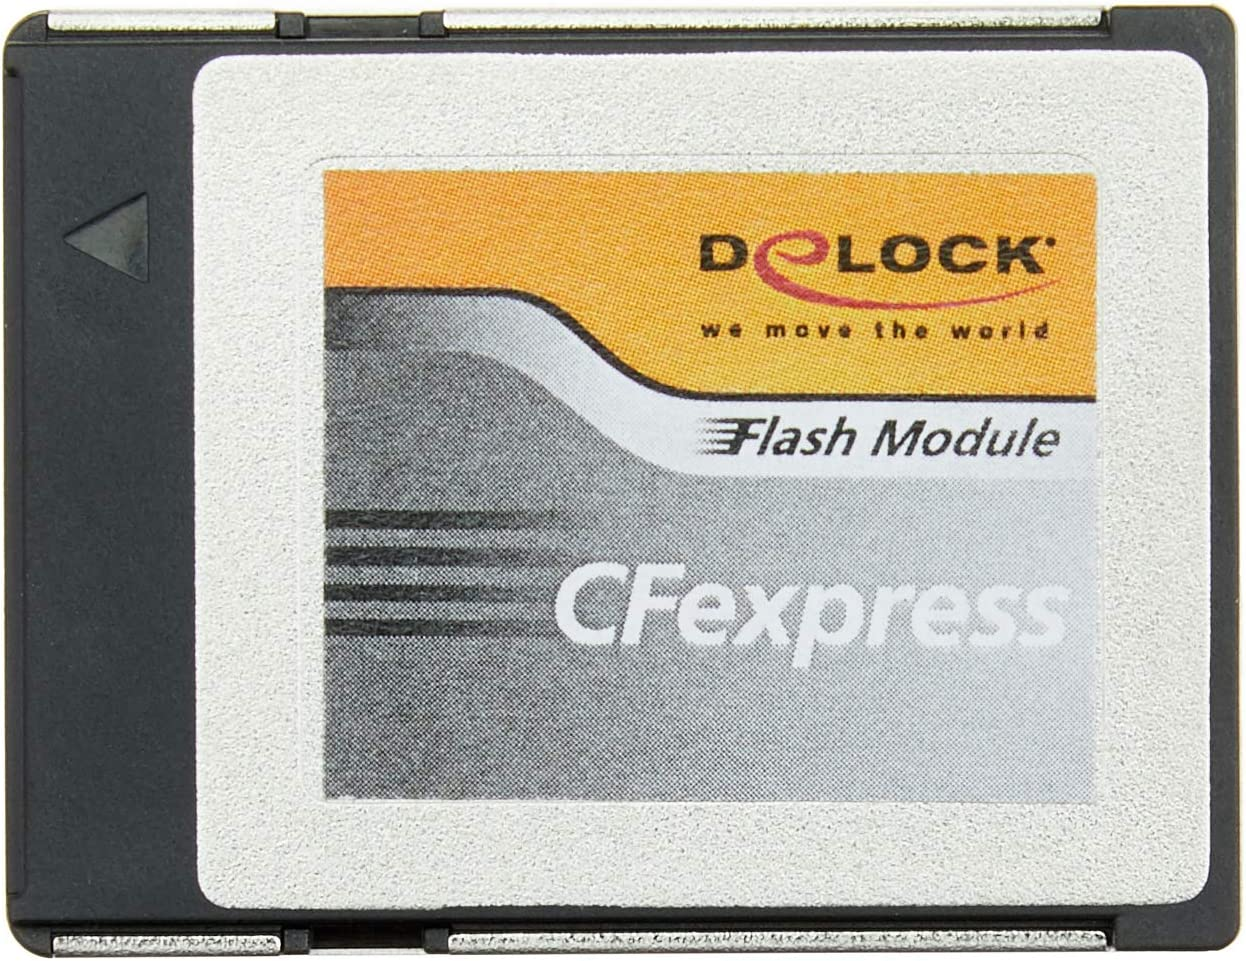 Delock Cfexpress Memory Card 64 Gb Computers Accessories